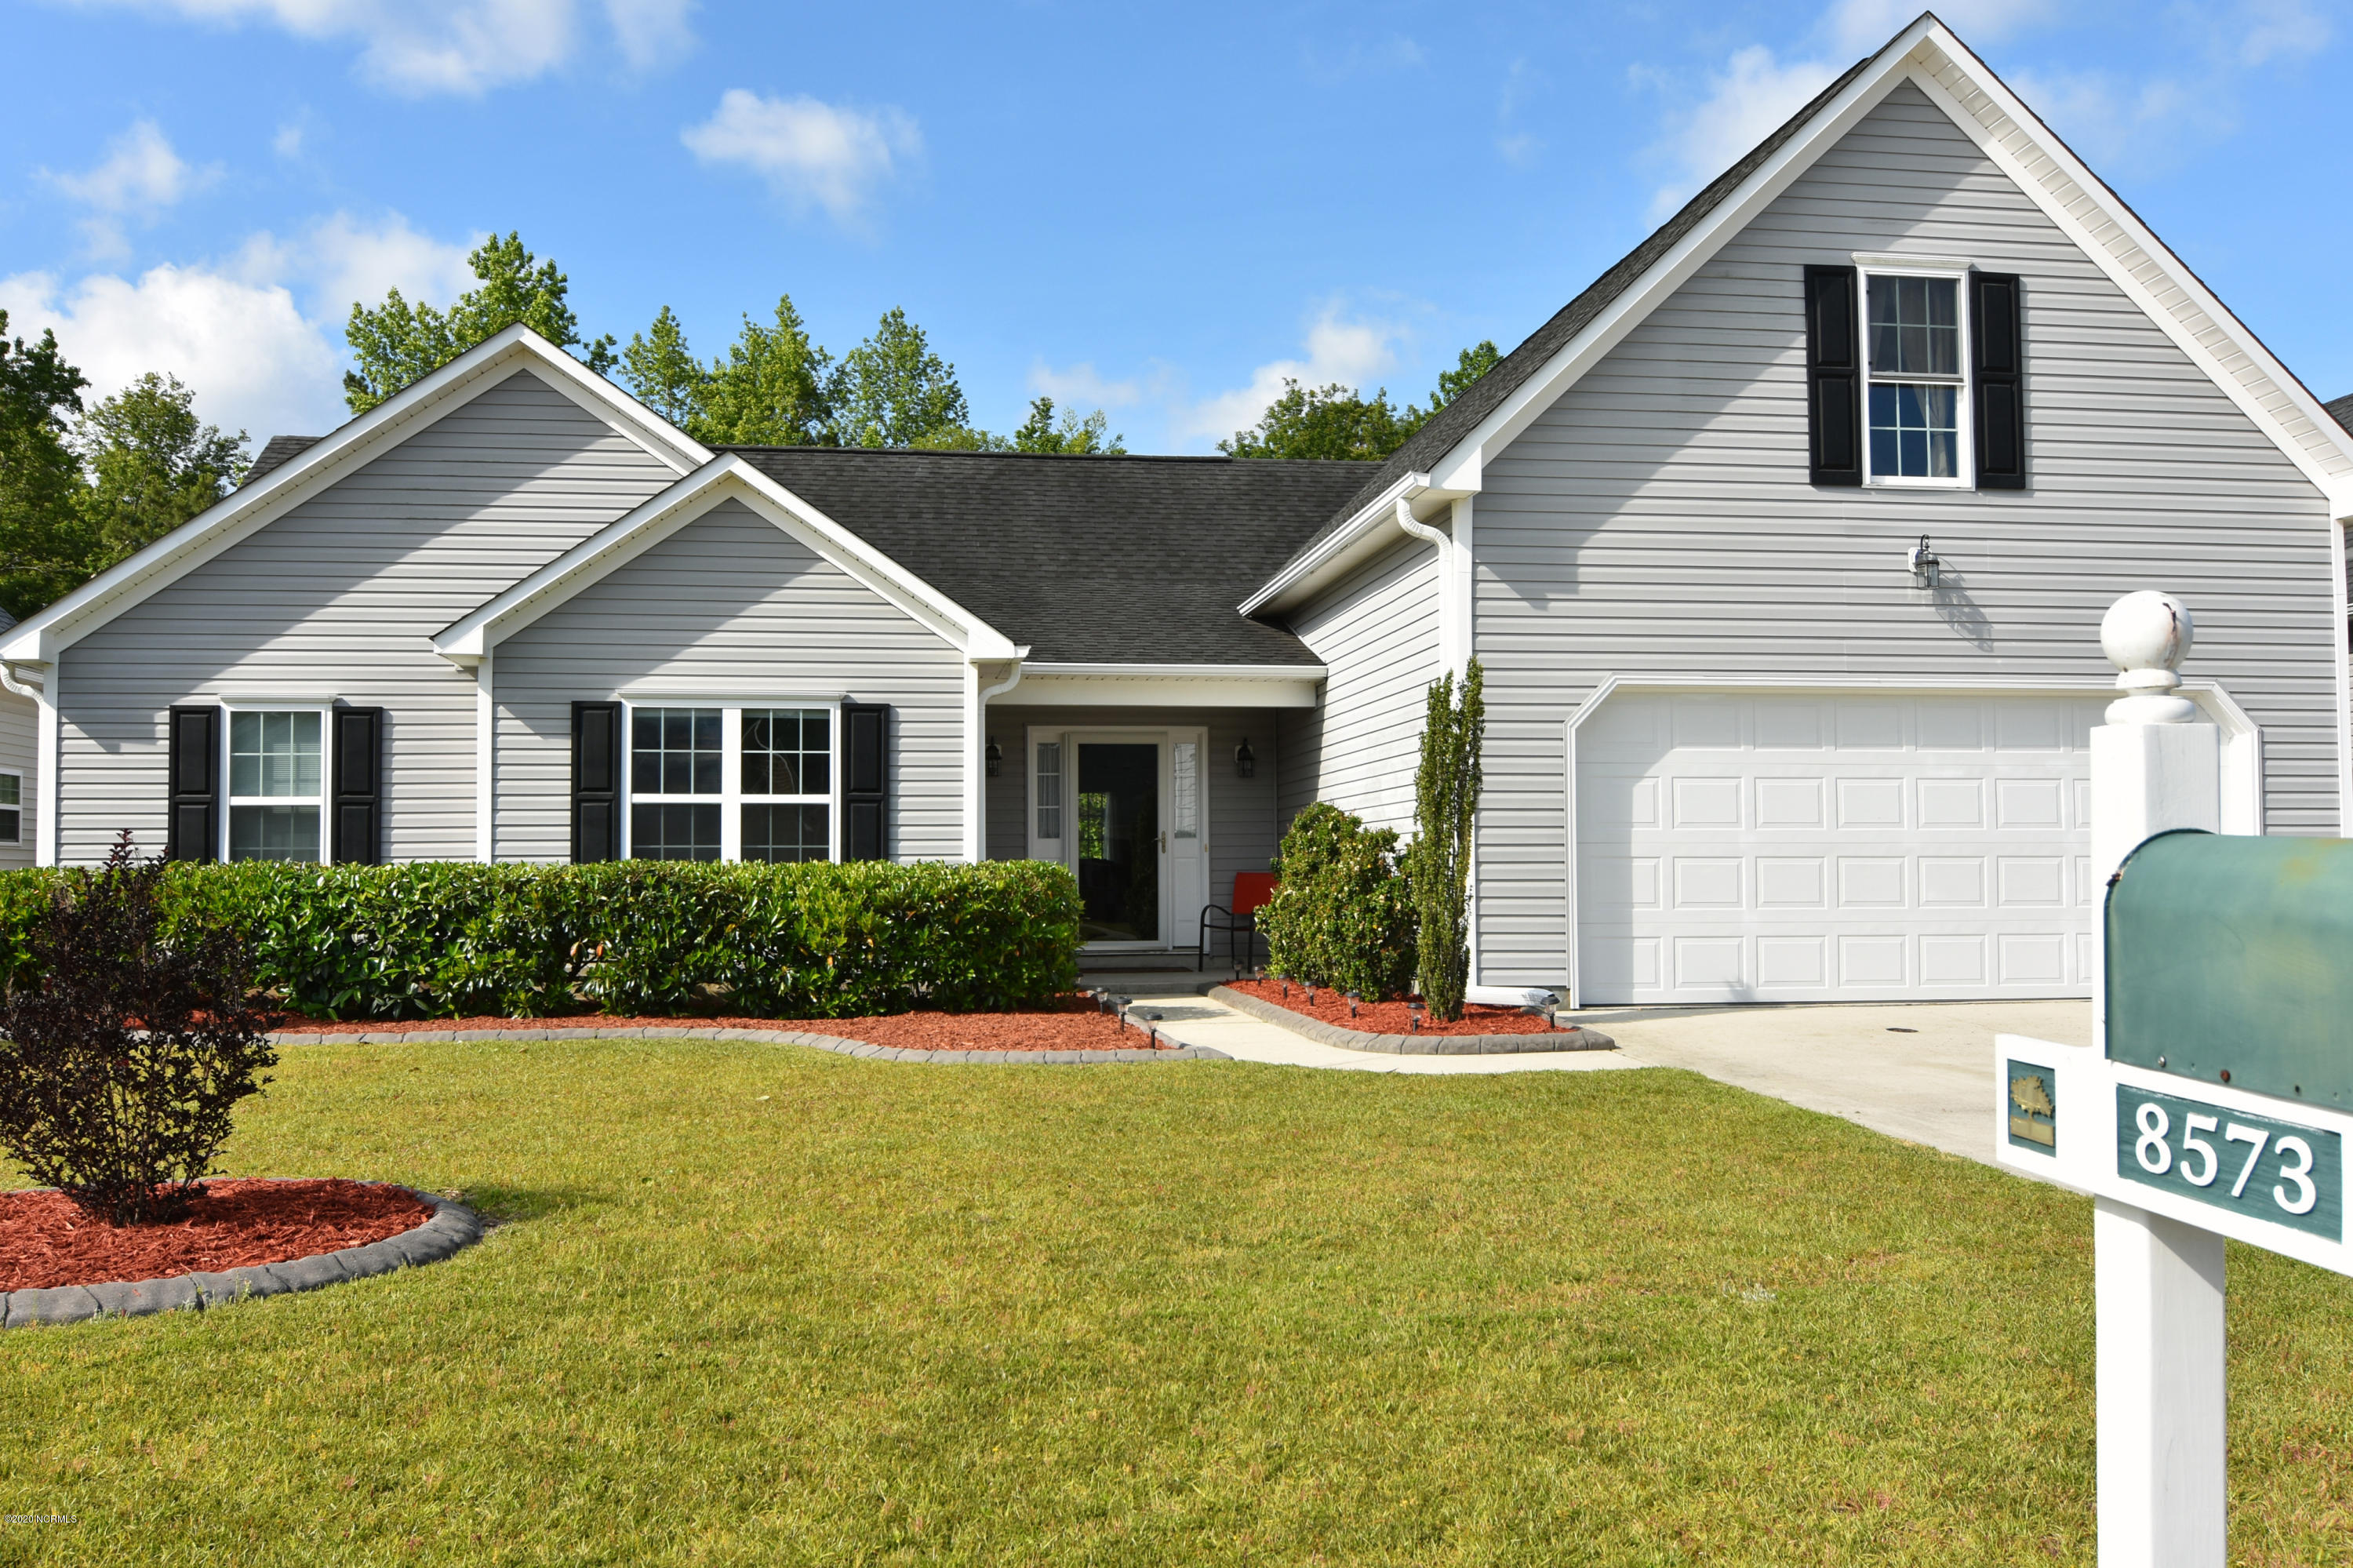 8573 Primm Forest Drive Leland, NC 28451